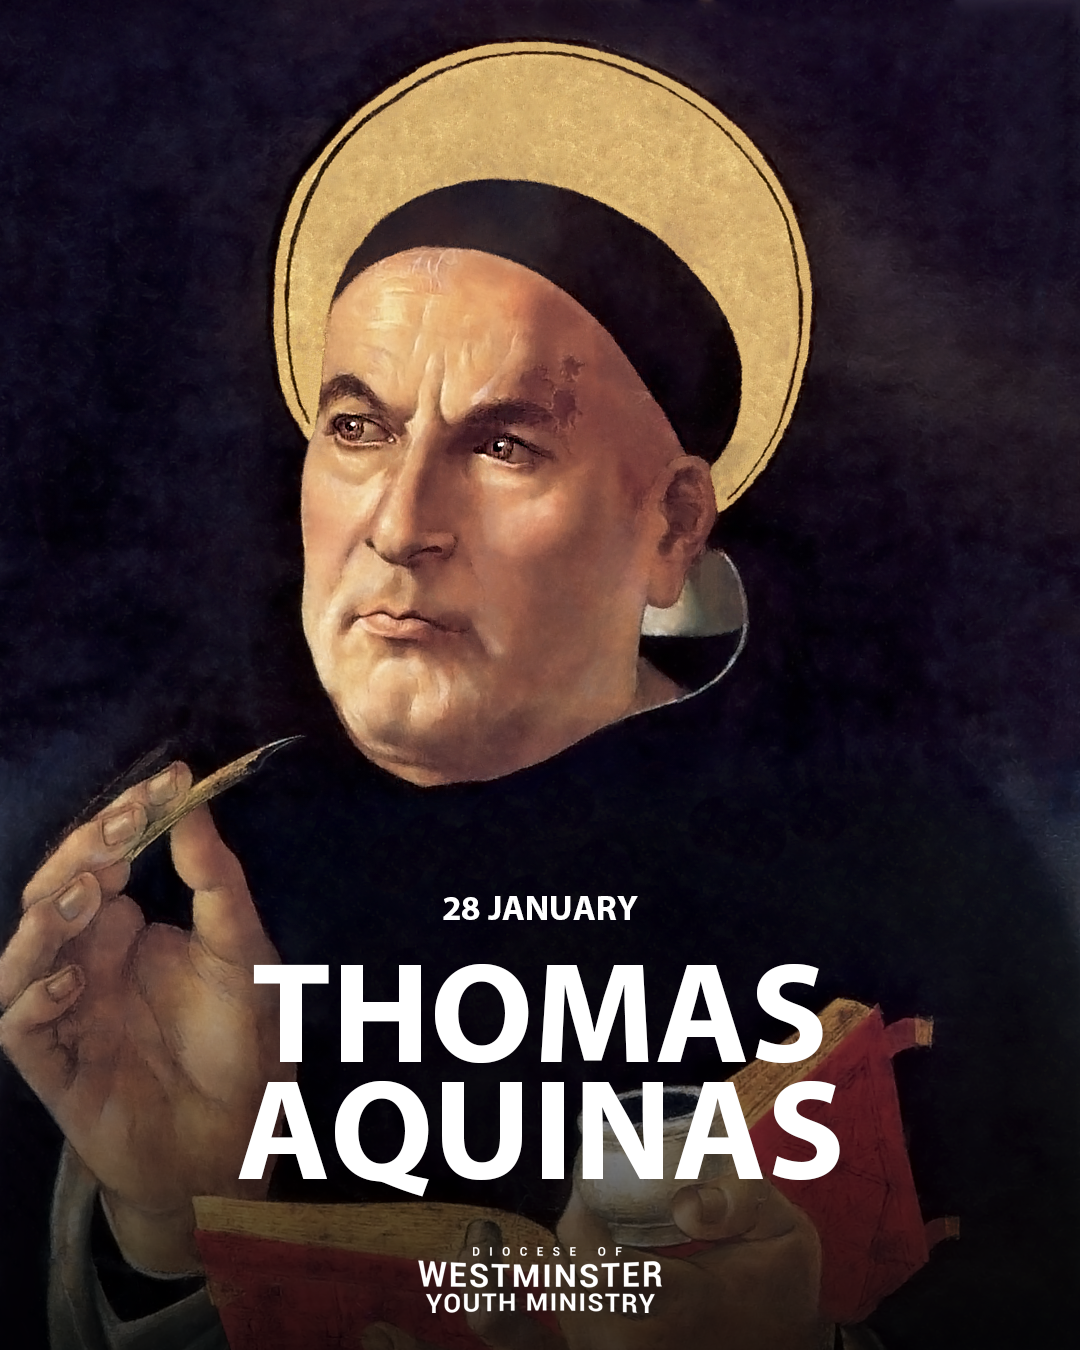 Saint Thomas Aquinas whose Feast Day is 28 January